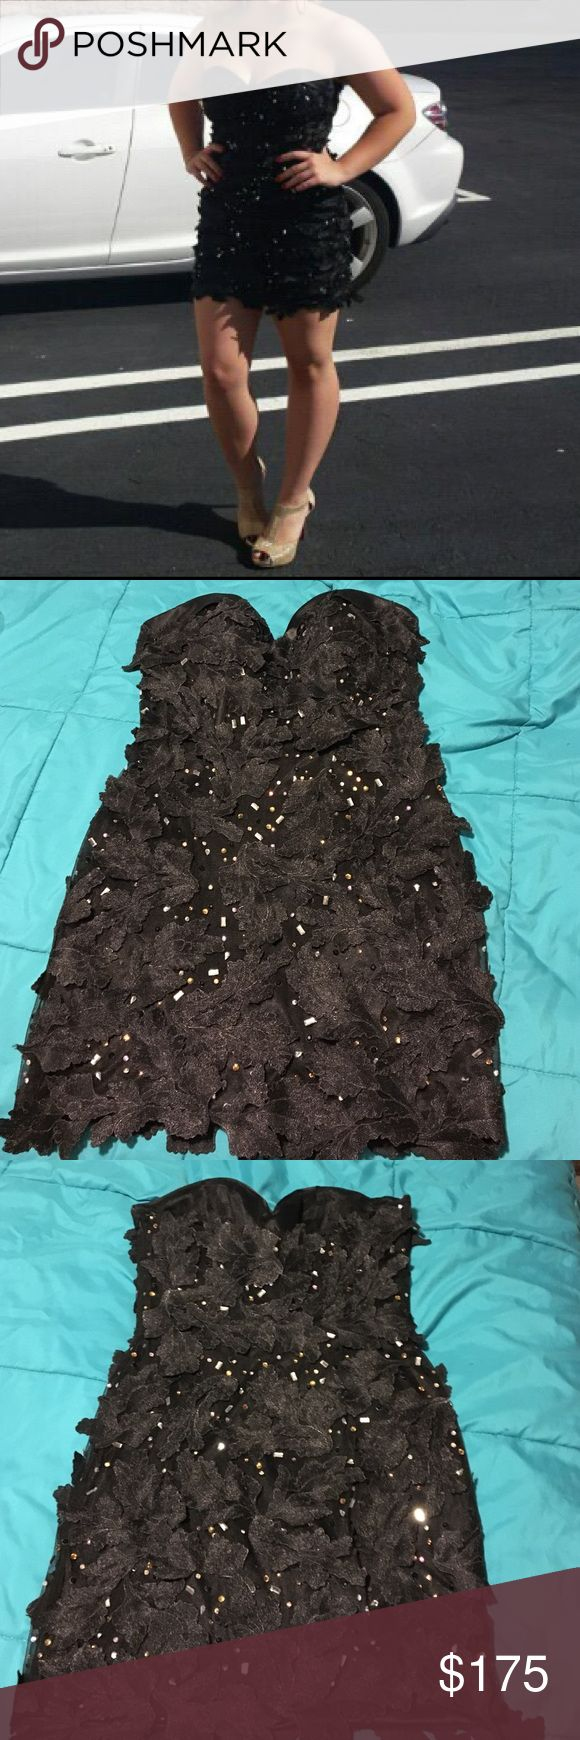 Homecoming dress! Strapless, tight fitting. This dress is extremely cute and has a lot of detailing to make it unique and formal! Dresses Strapless